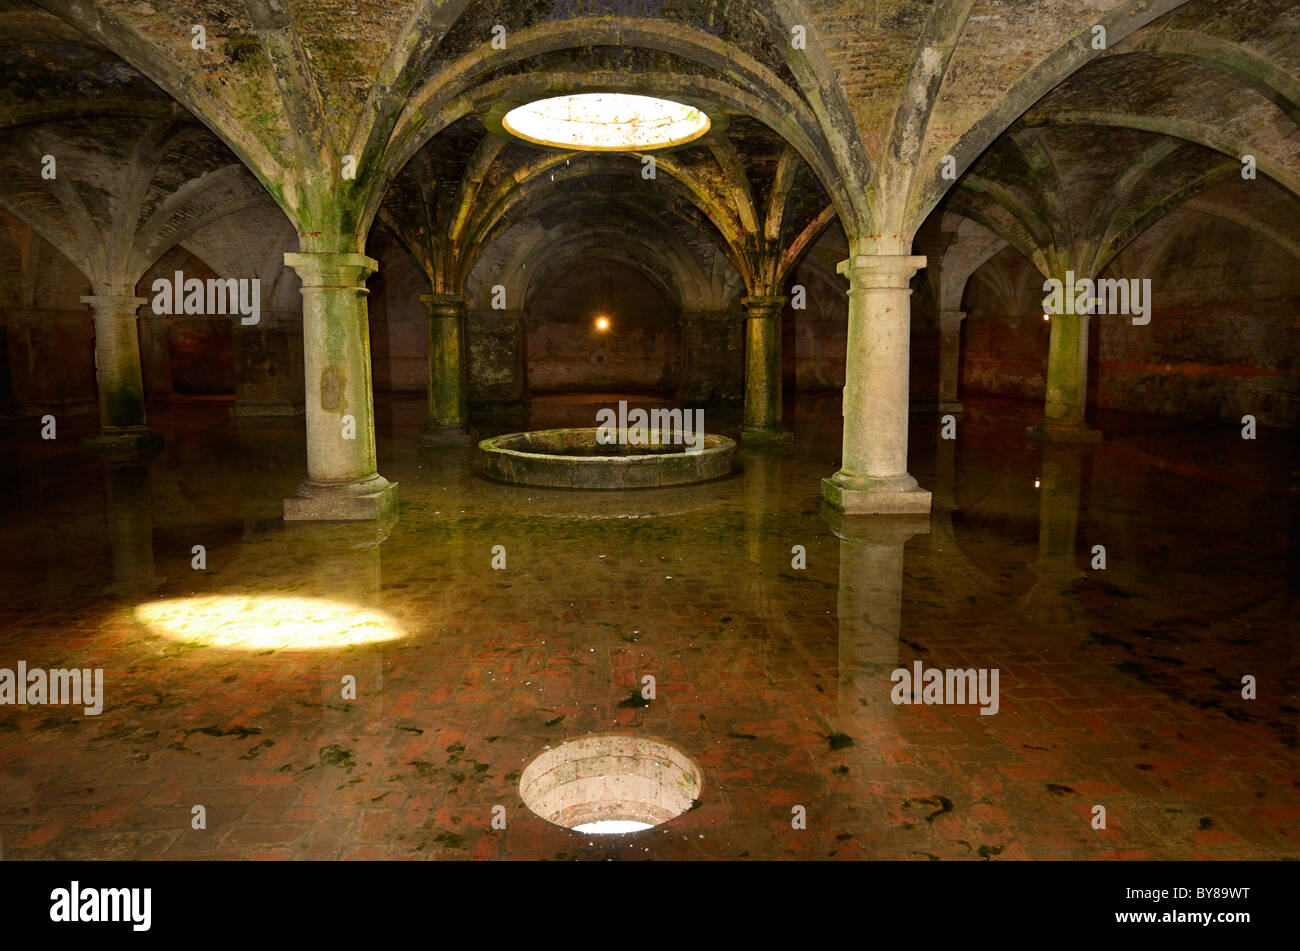 Vaulted armoury and skylight in underground Portuguese cistern with fresh water in the old city of El Jadida Morocco - Stock Image